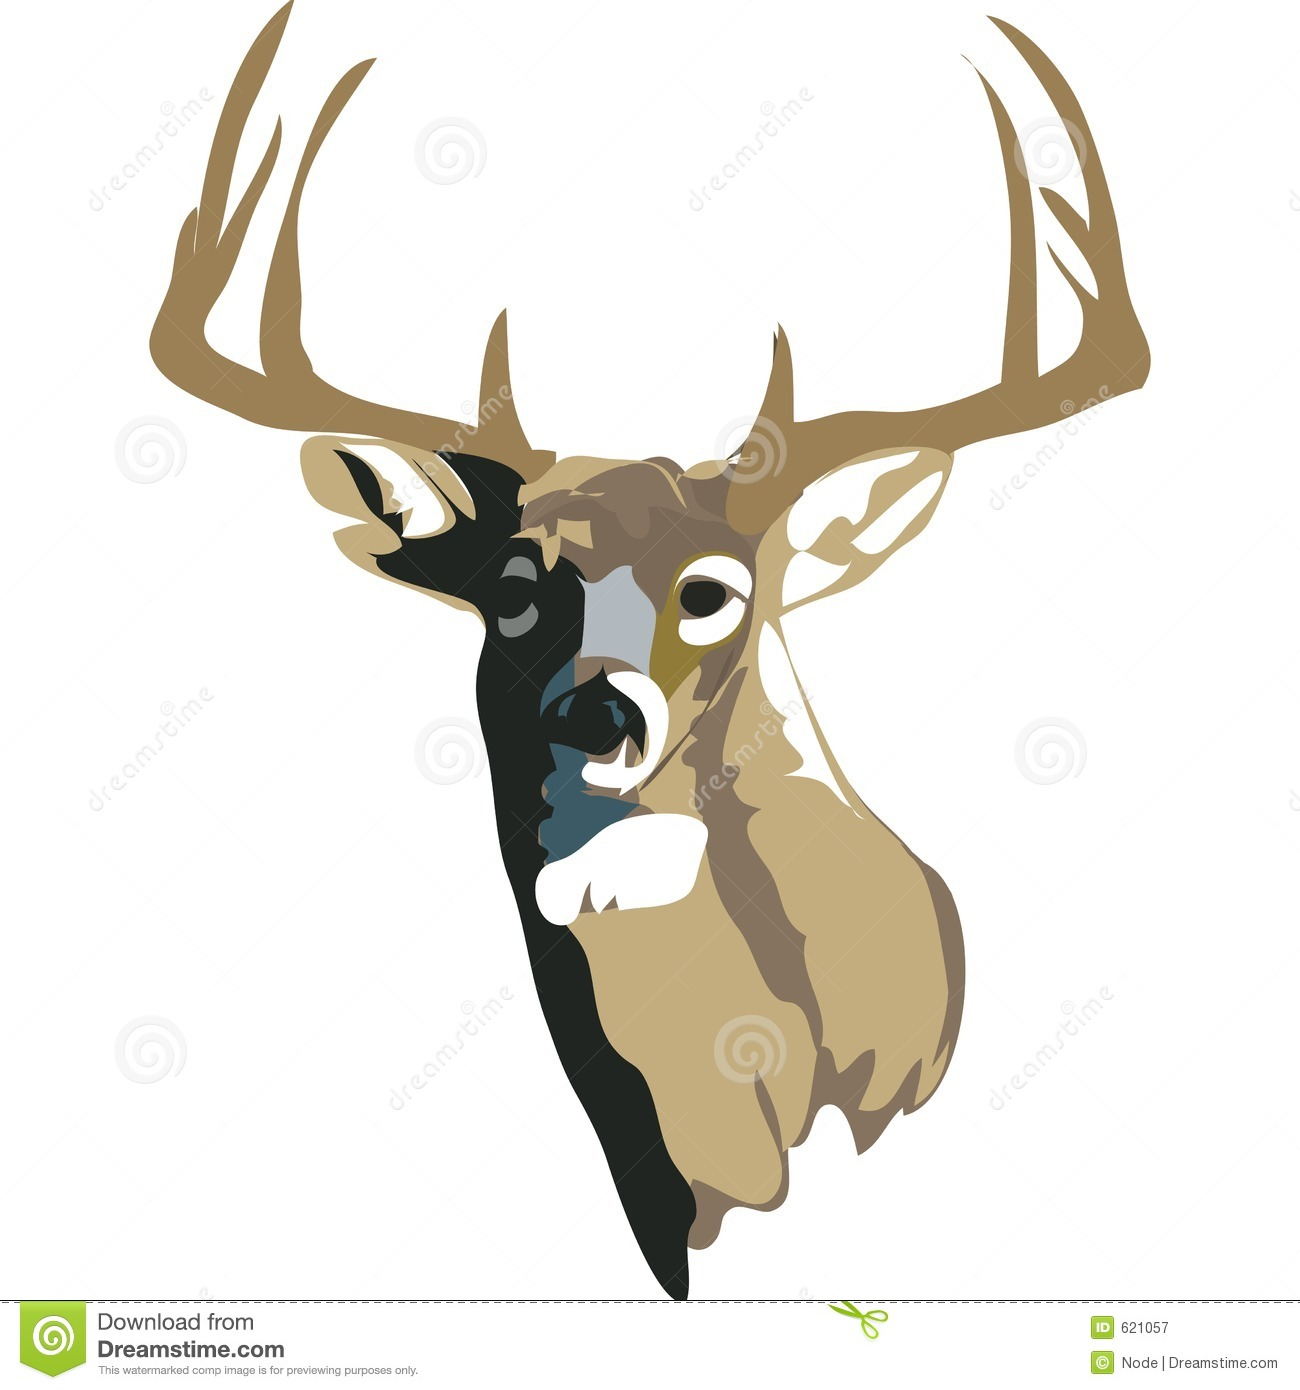 Image De Art Deer And Drawing: White Tailed Deer With Clipping Path Stock Illustration